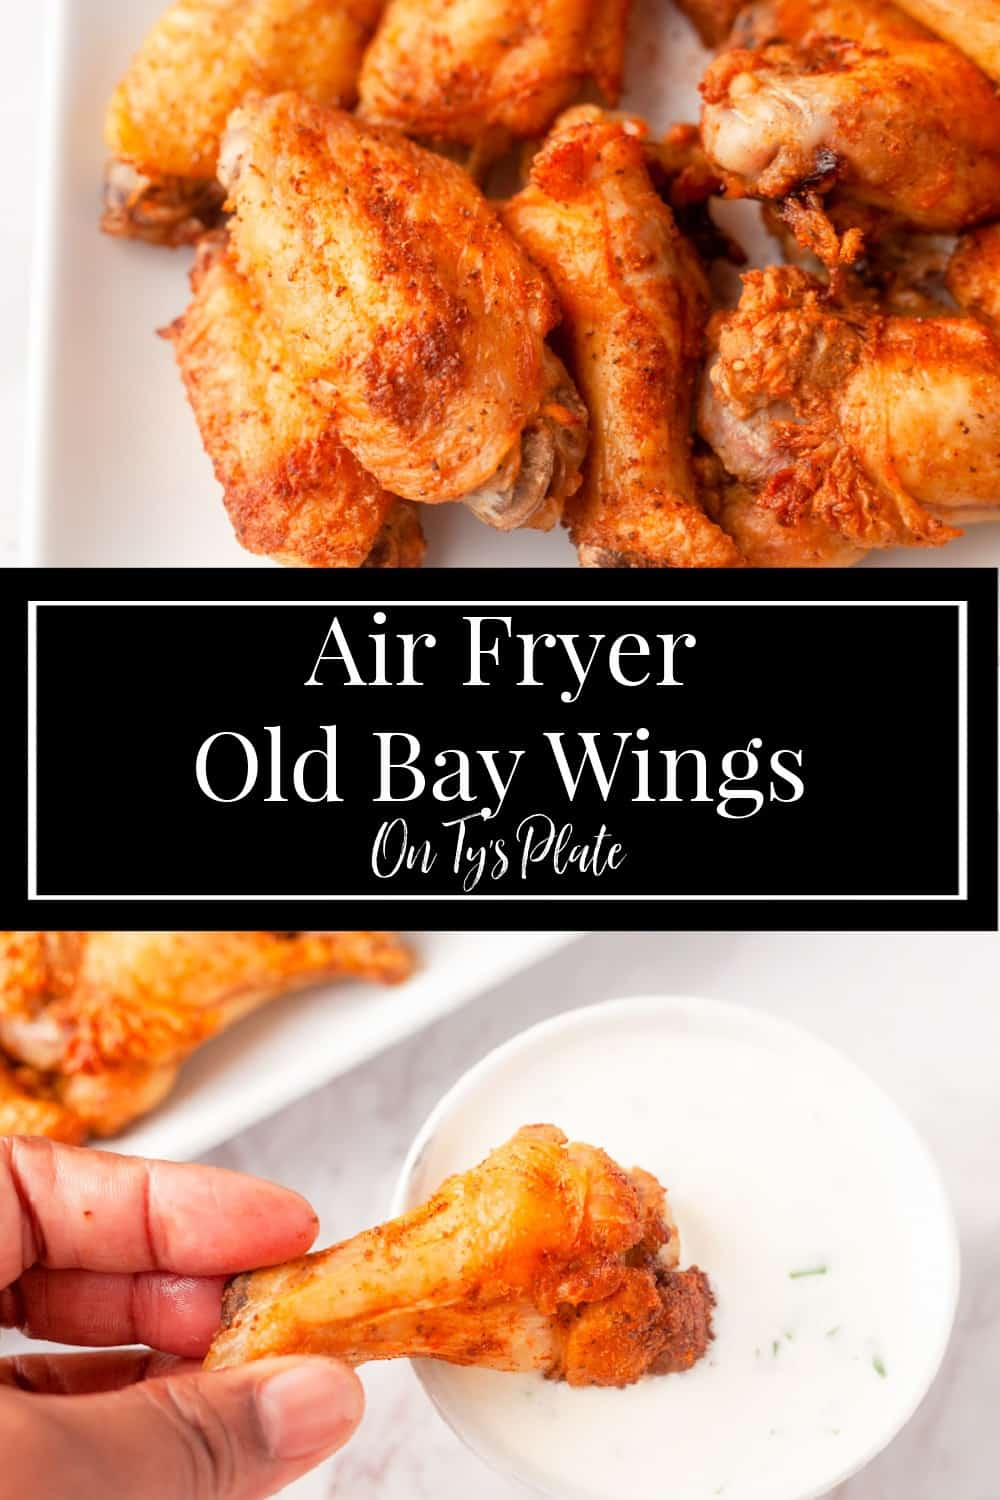 Air Fryer Old Bay Wings